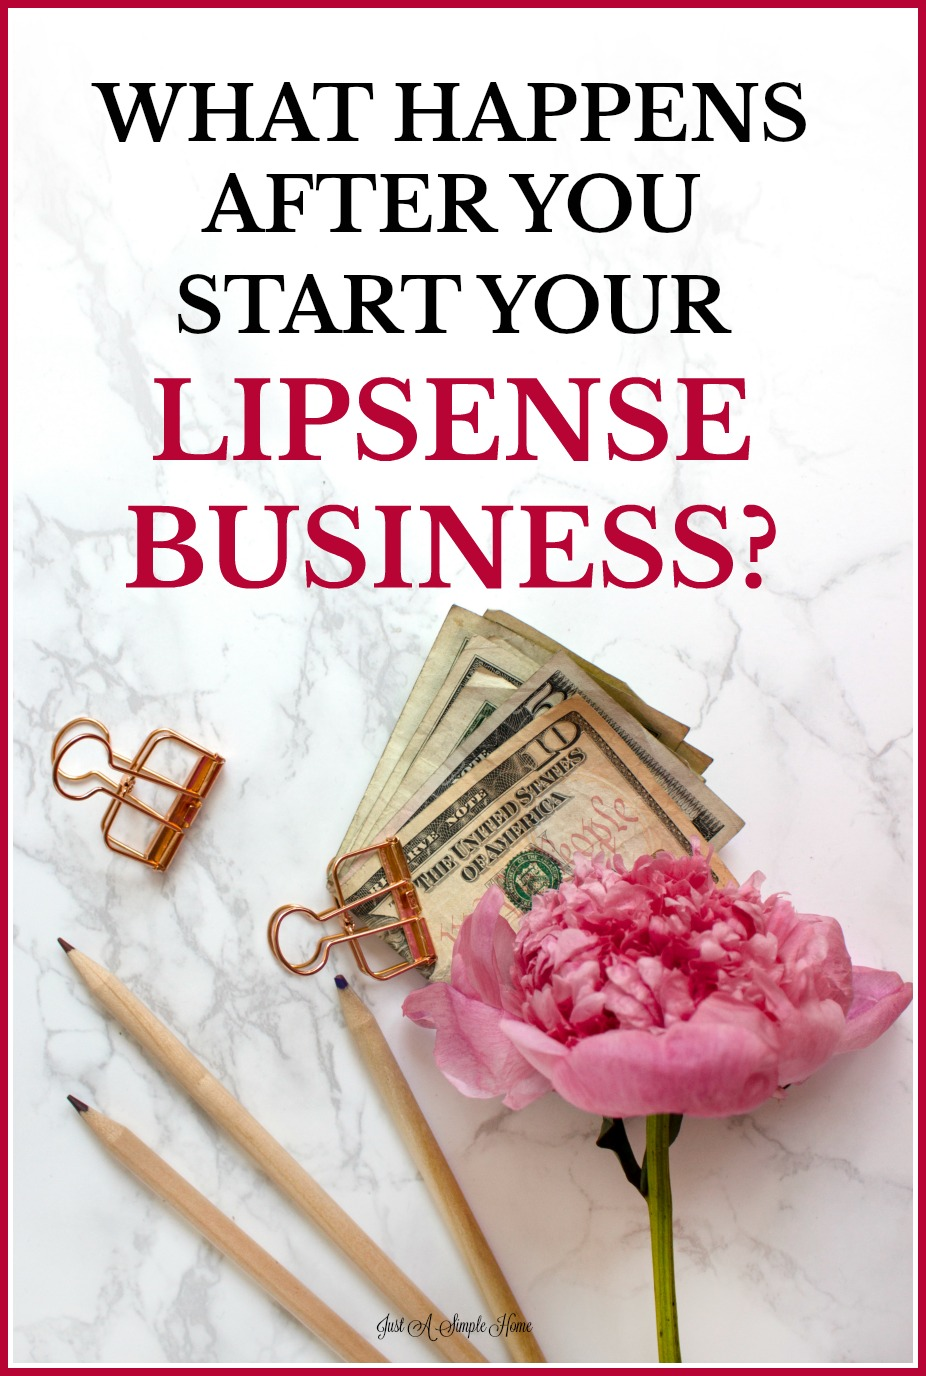 What happens after you start your LipSense business? Next steps? What training will you receive? Where should you put your focus? This should clear up all your questions so you can focus on building your business with excitement! #wahm #lipsense #workfromhome #sahm #makemoneyonline #directsales